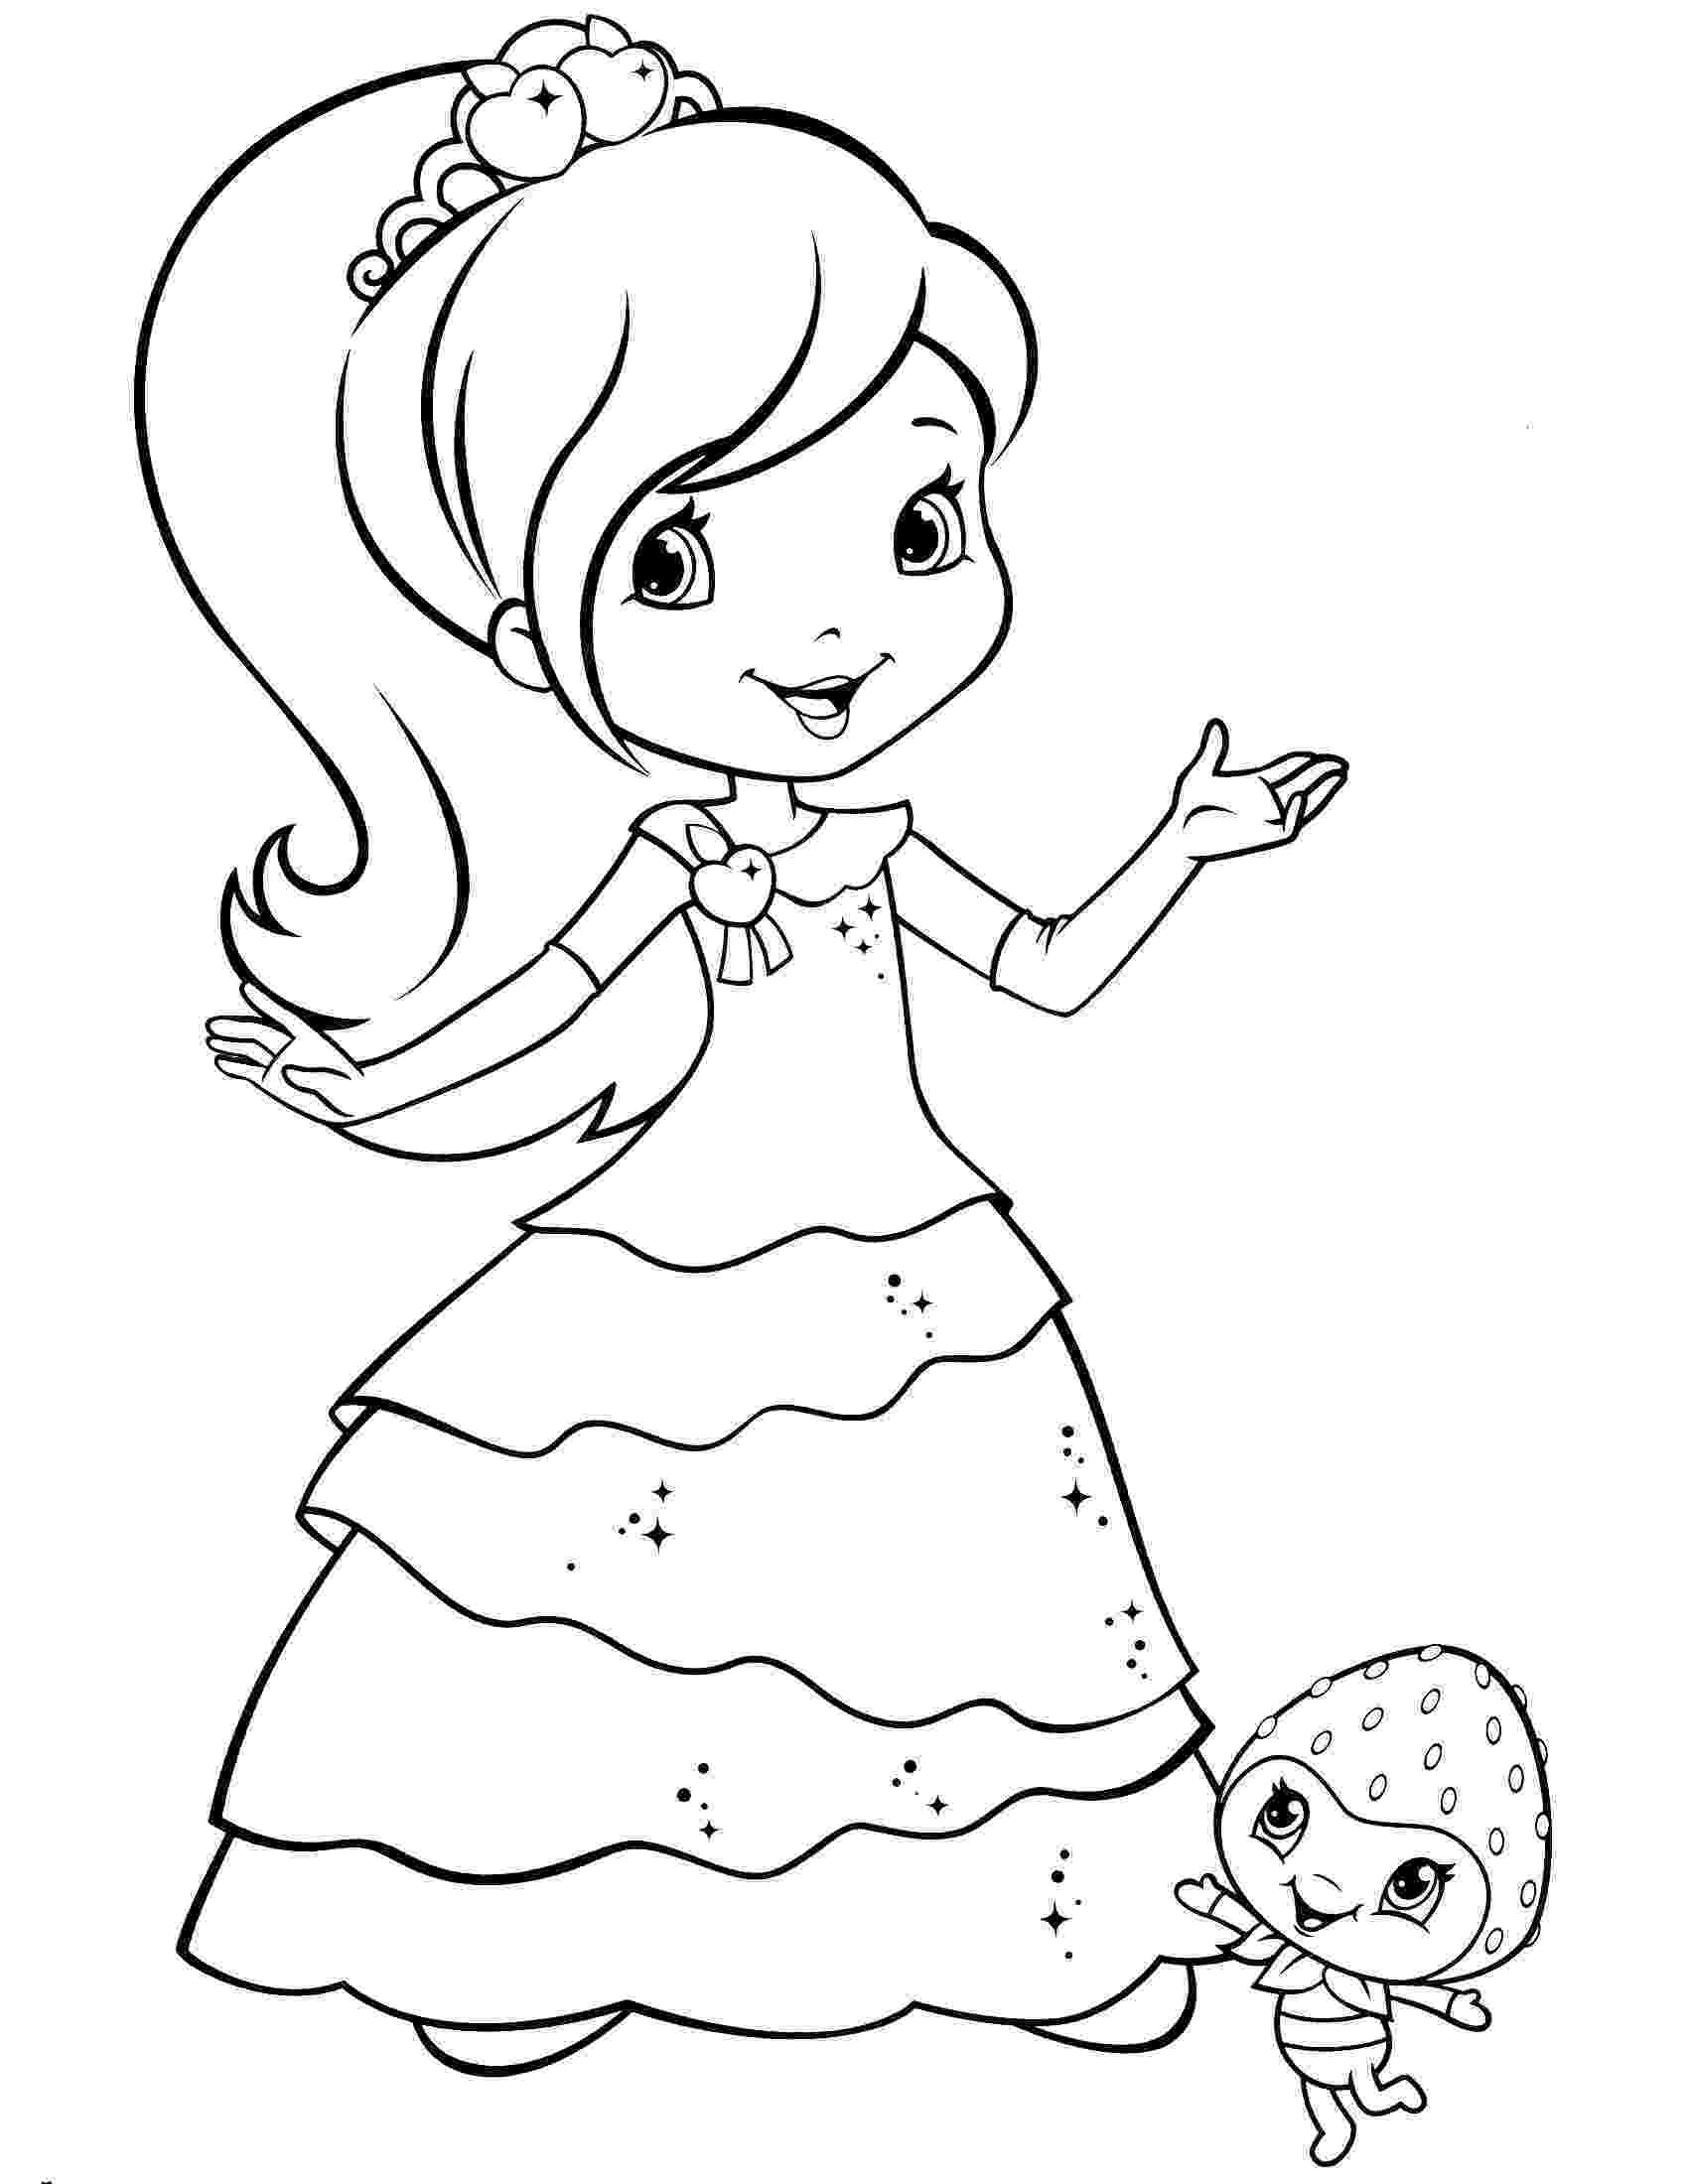 pictures of strawberry shortcake strawberry shortcake coloring page coloring pages of strawberry shortcake pictures